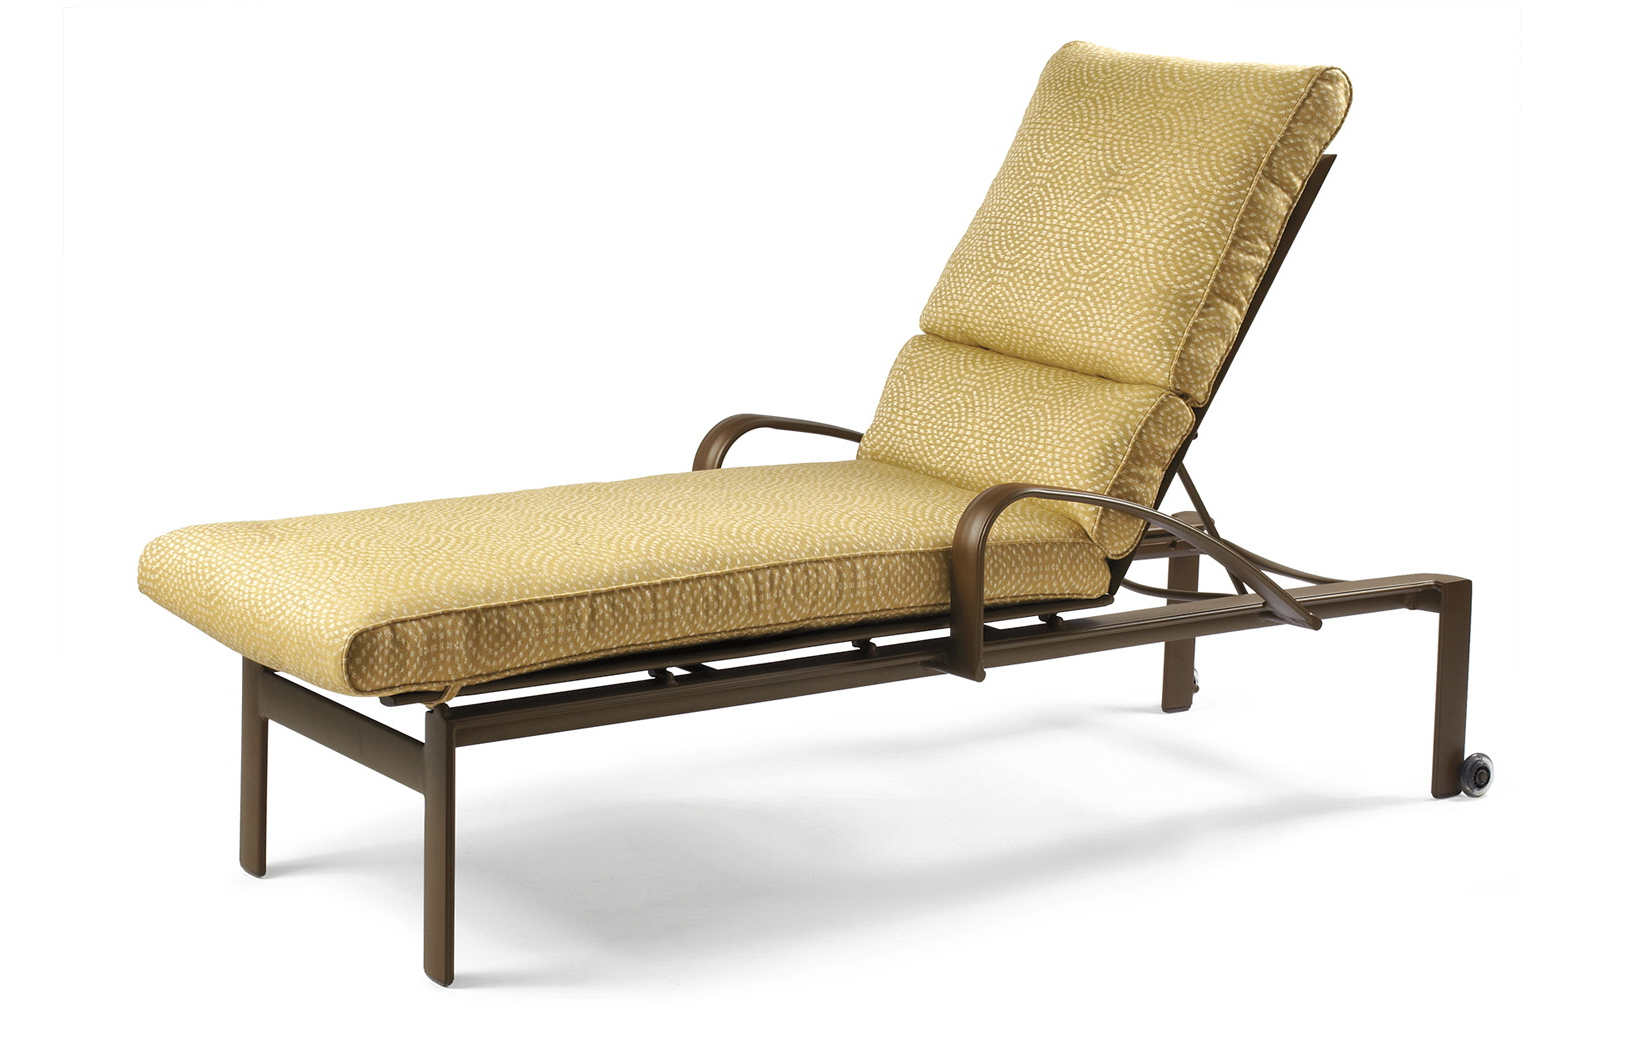 2019 Chaise Lounge Chairs In Bronze With Oatmeal Cushions Pertaining To Belvedere Cushion Outdoor Chaise Lounge With Skate Wheels (Gallery 24 of 25)